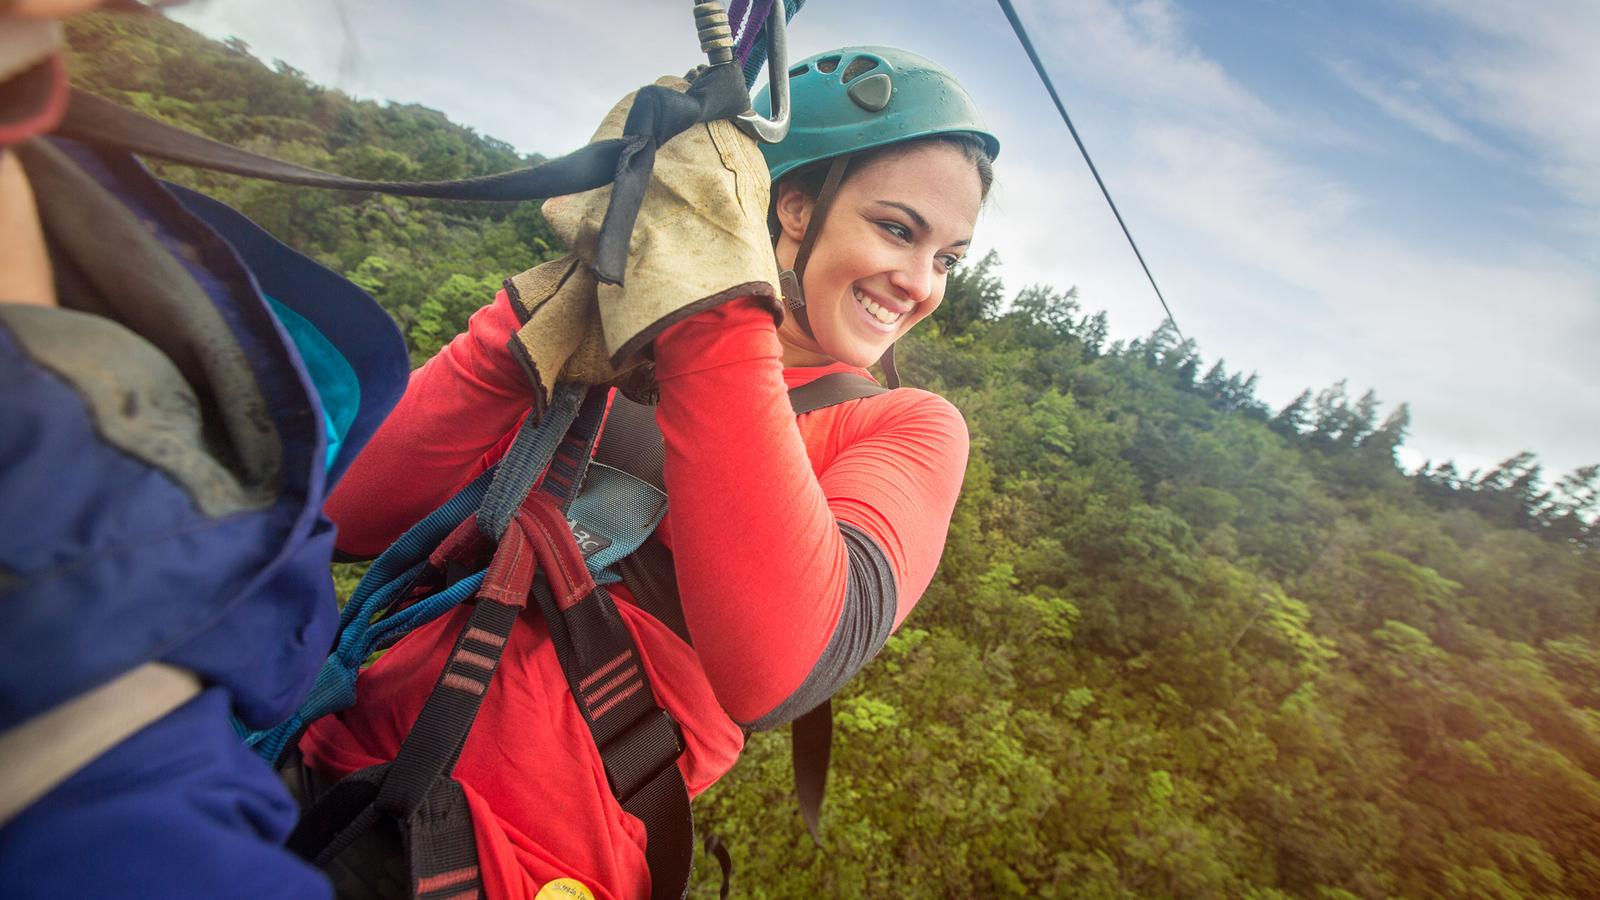 Zipping down the line in Costa Rica!